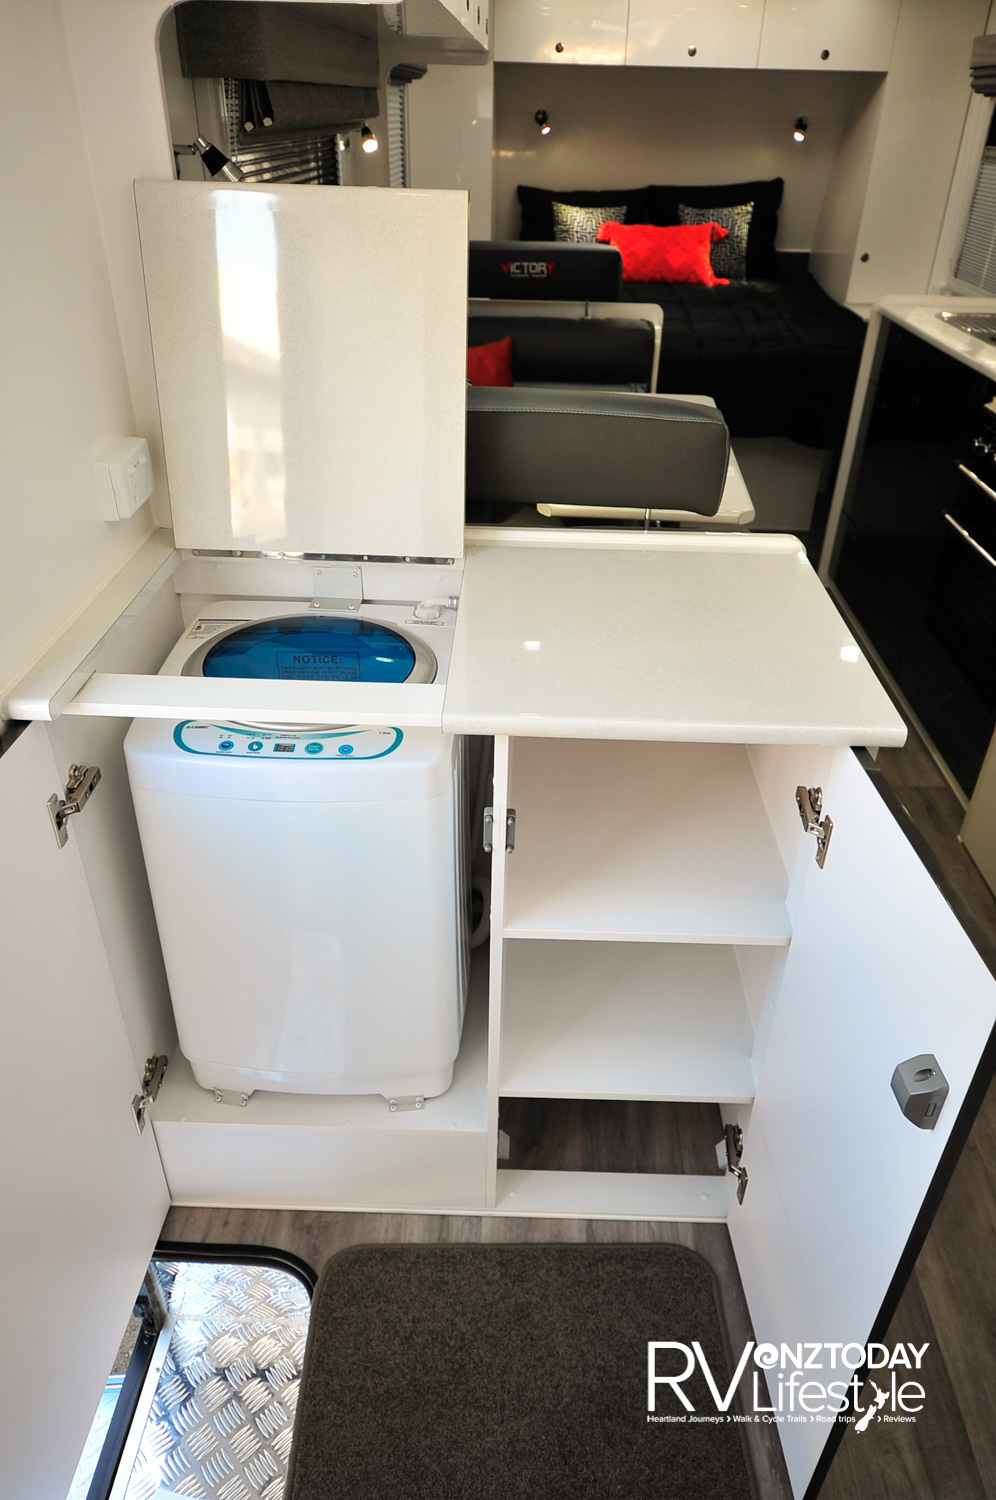 Washing machine and storage combined into a nice cabinet